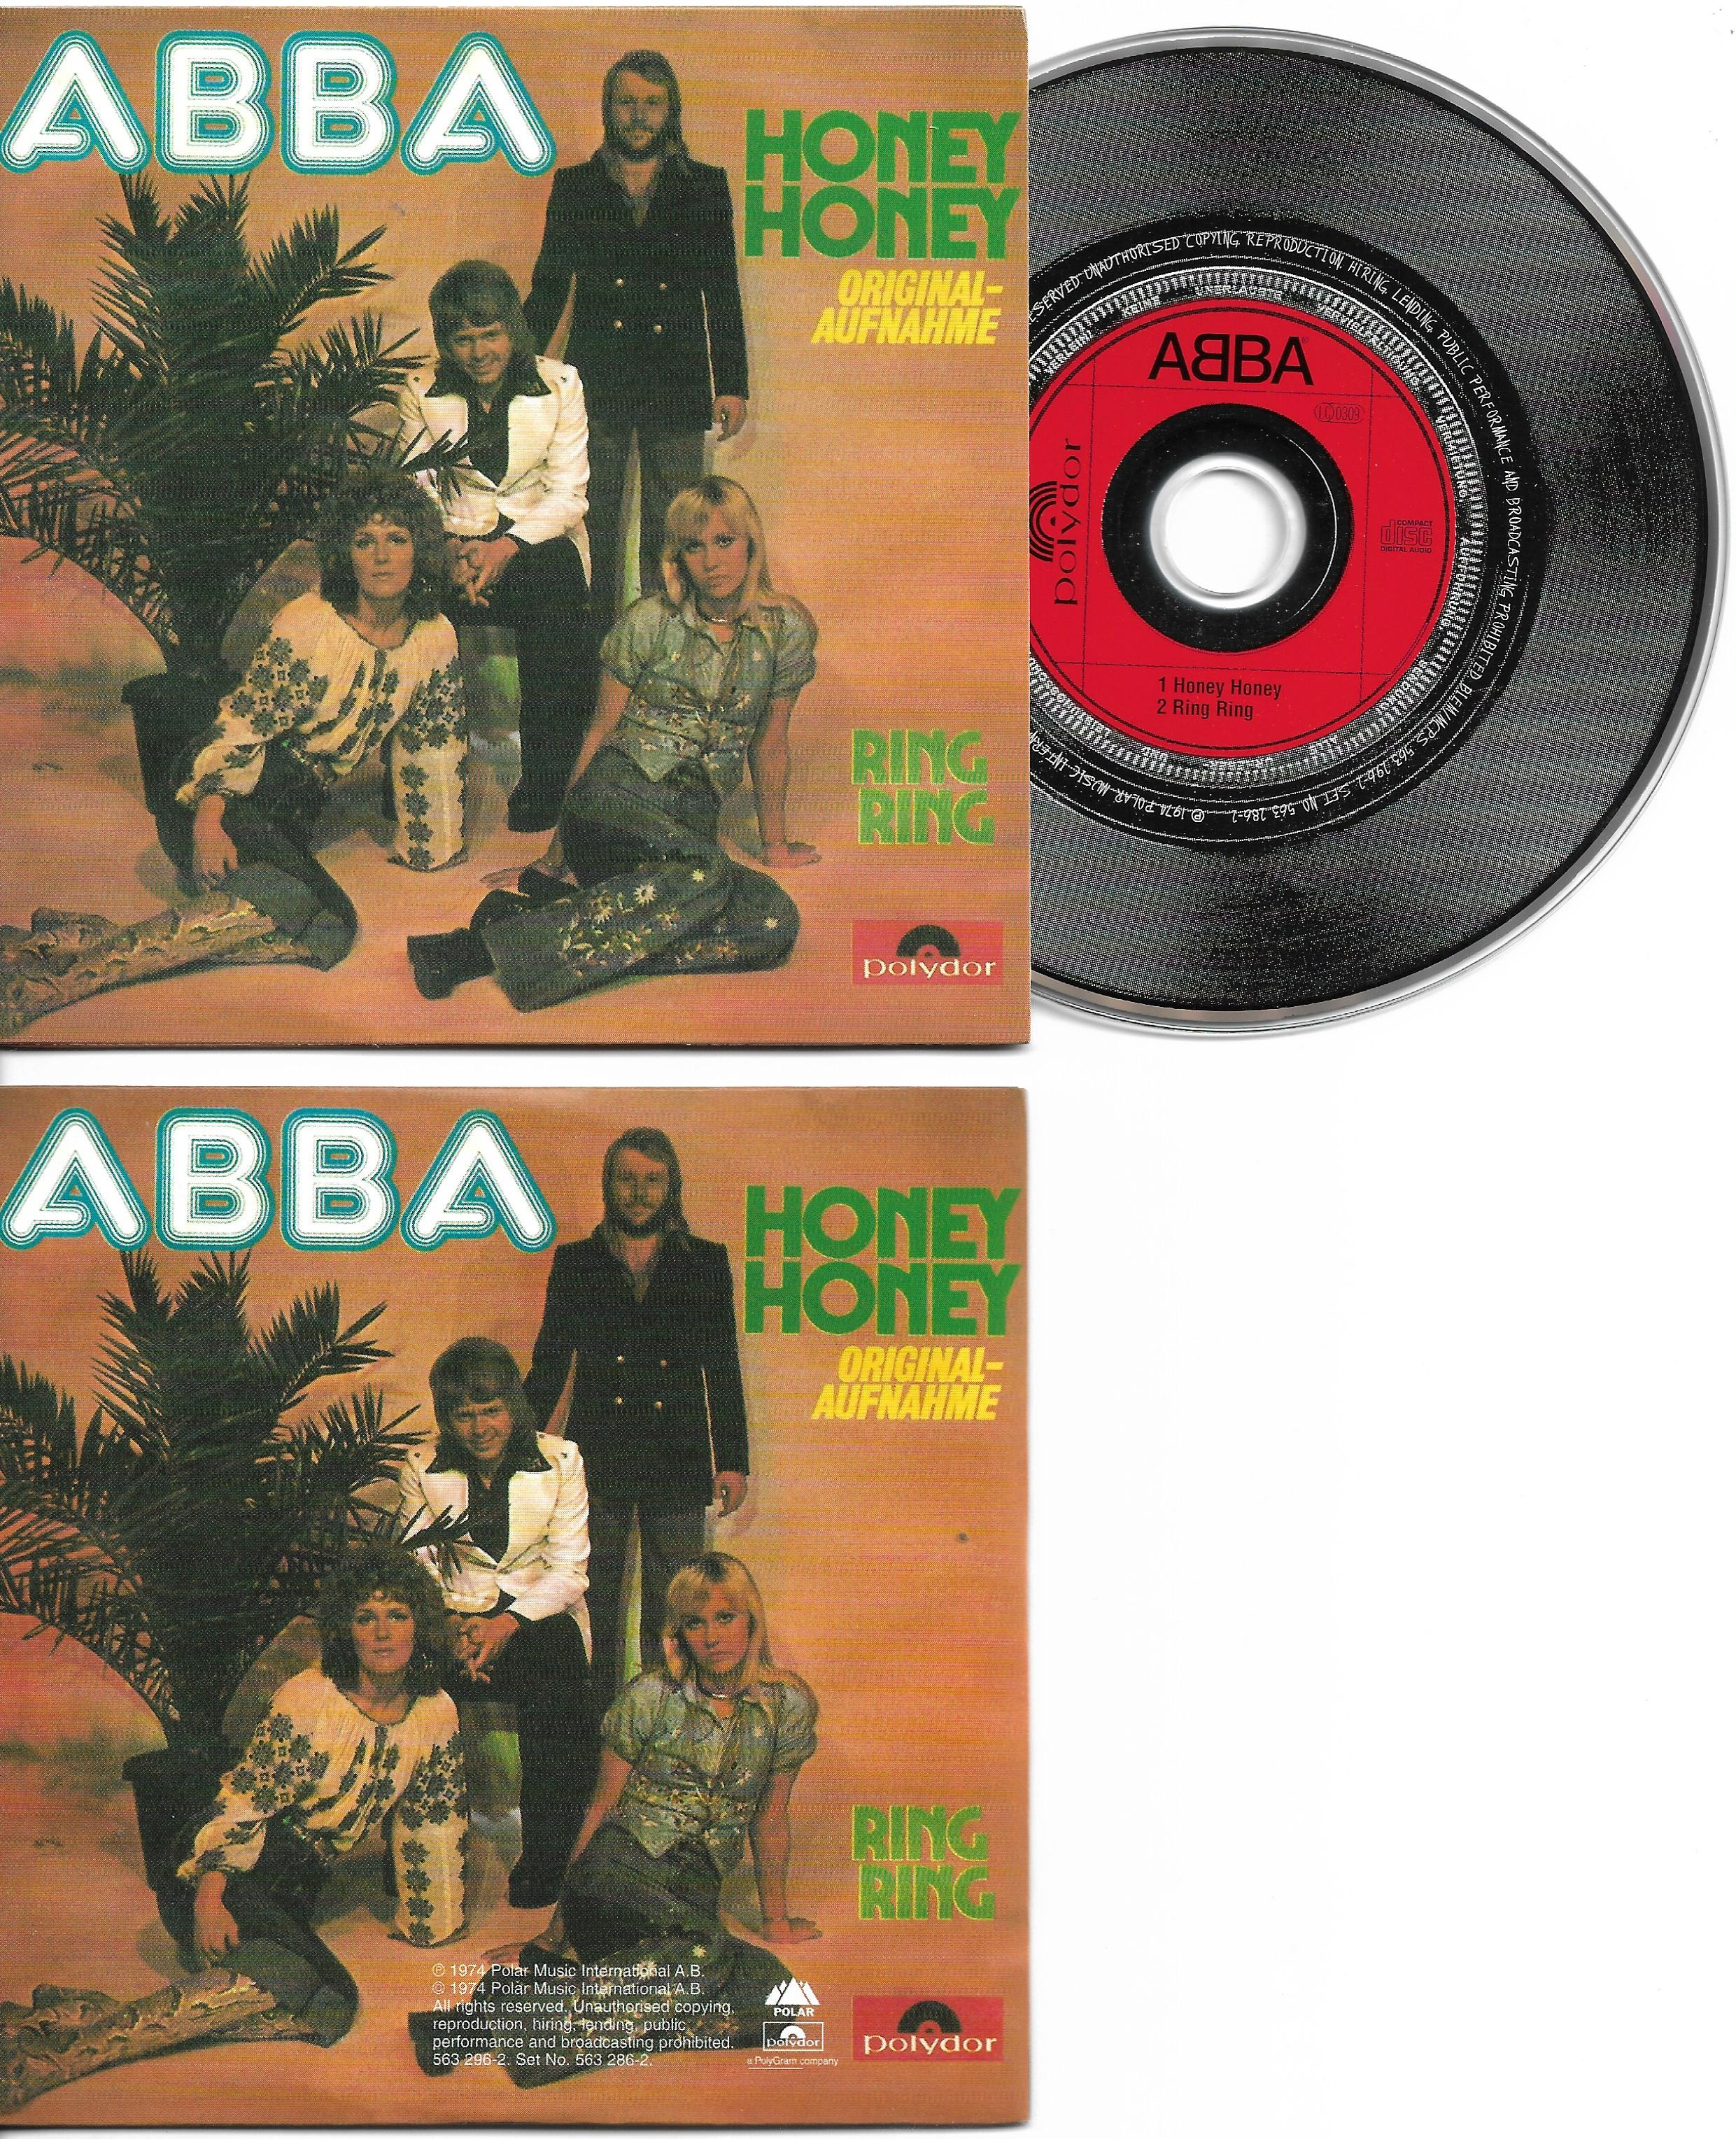 ABBA - Honey Honey 2-track Card Sleeve